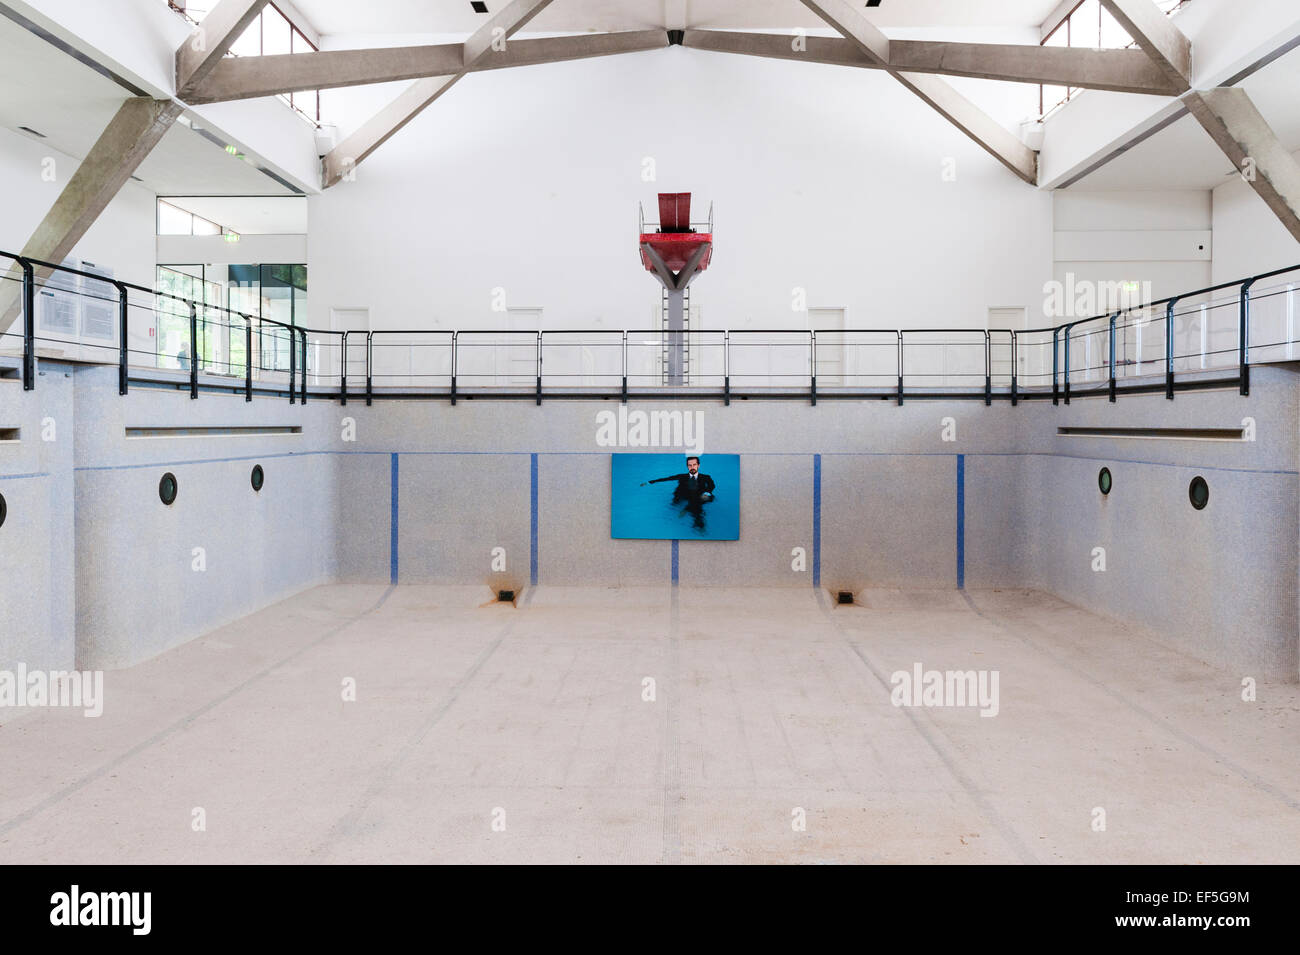 Venice Italy An Empty Swimming Pool Used As A Venue For